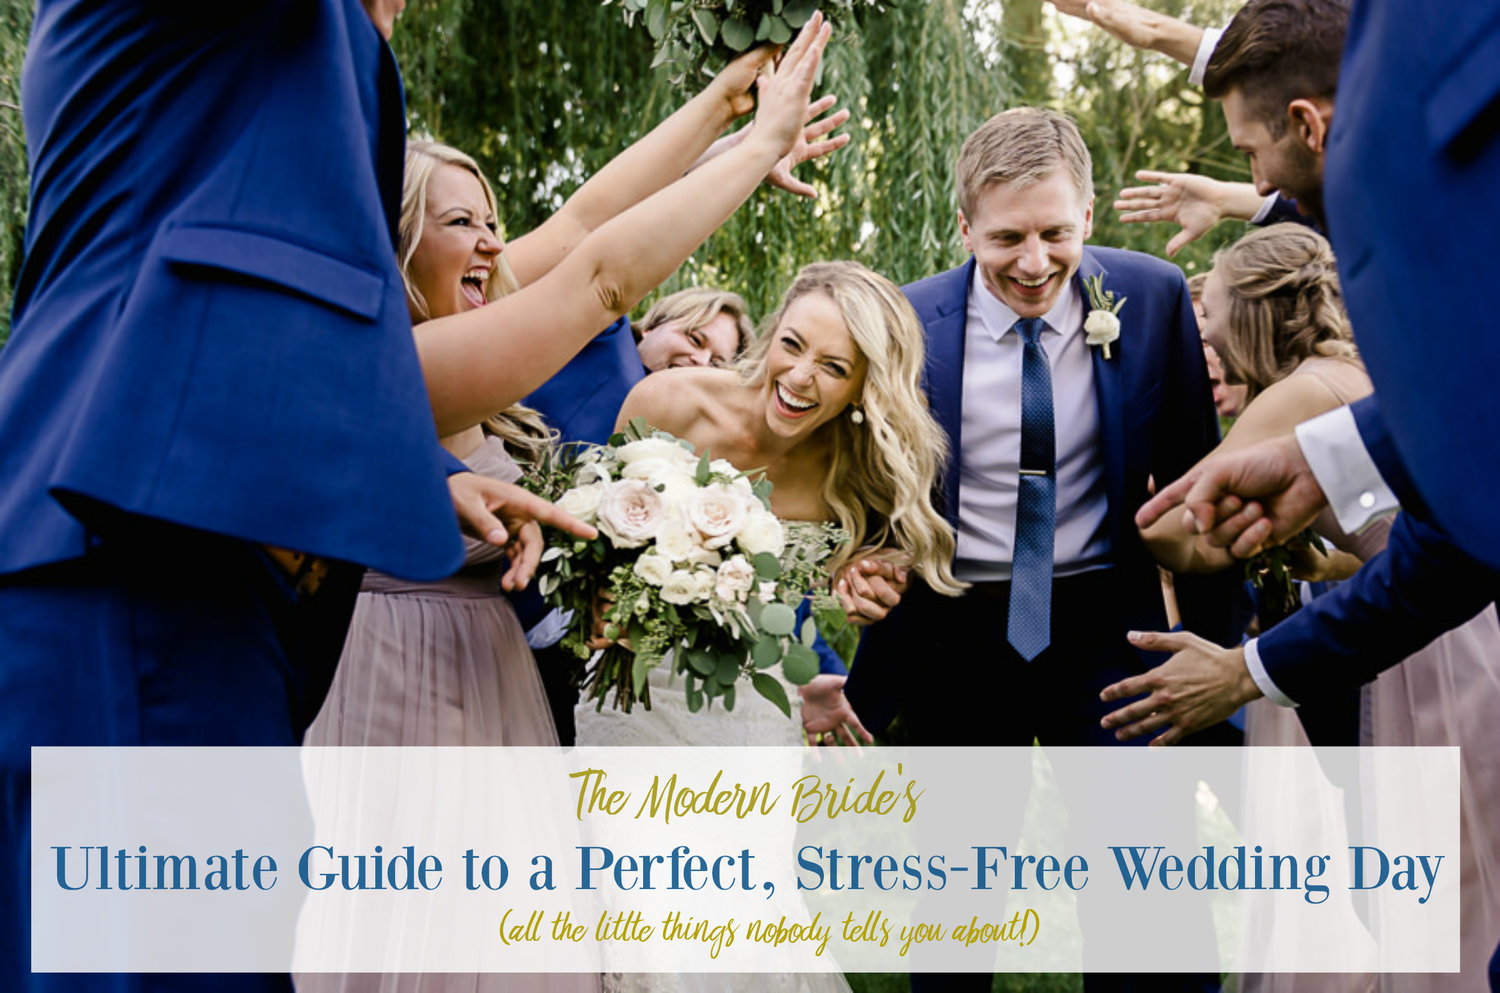 b6c3924901a The Modern Bride s Ultimate Guide to a Perfect